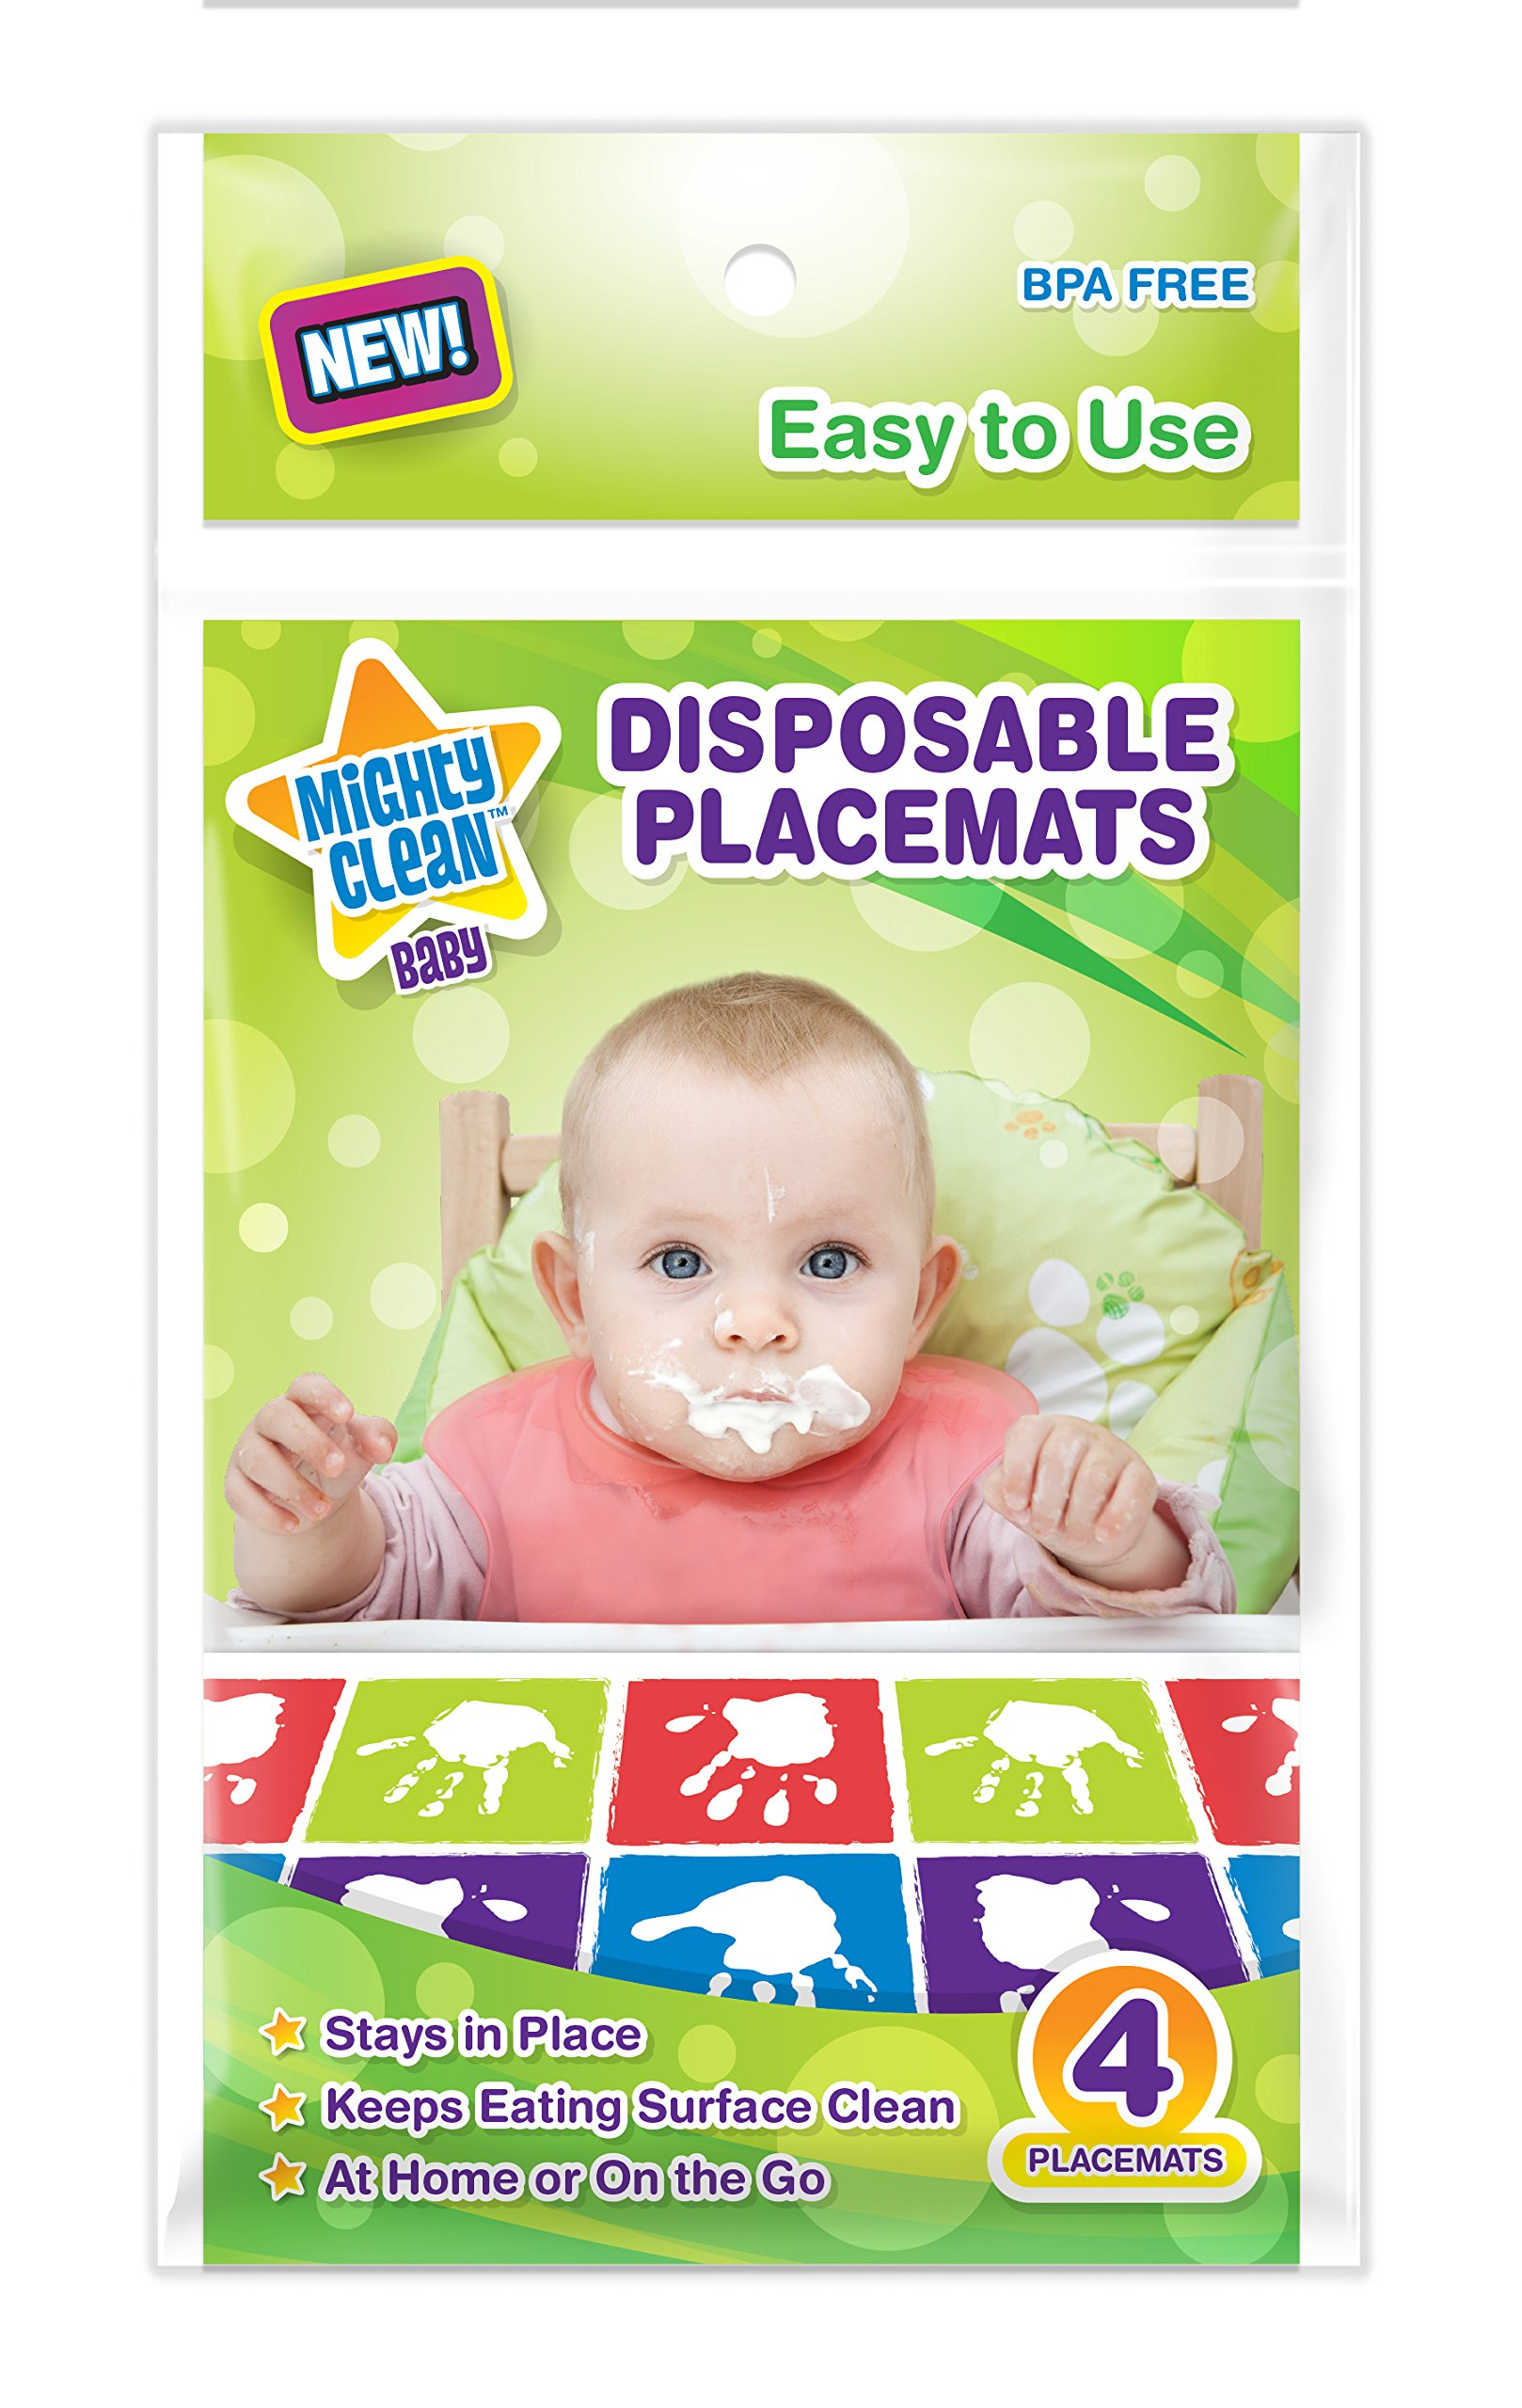 Mighty Clean Baby Disposable Placemats 24 Count (6 Packages of 4 Placemats)